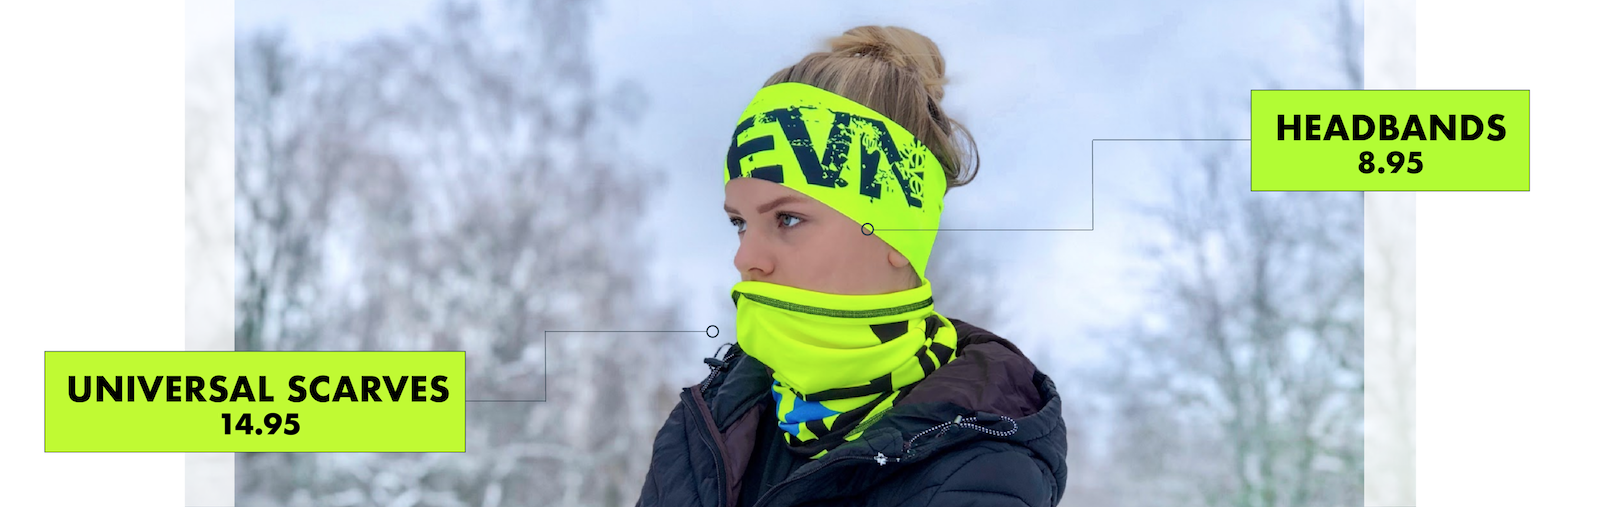 Winter accessories: headbands and multifunctional scarves